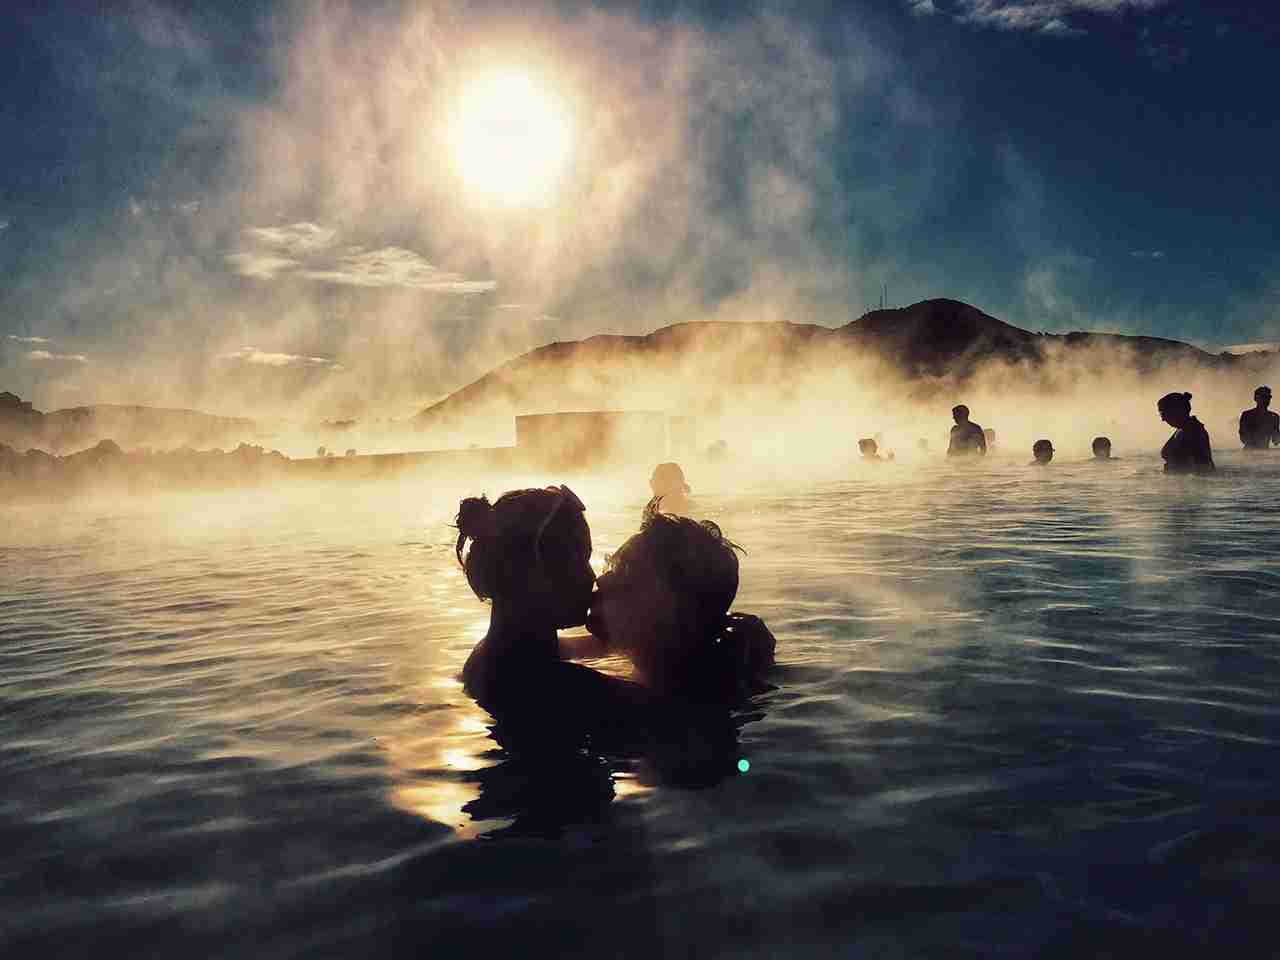 Grindavík, Iceland, home of the Blue Lagoon. (Photo by